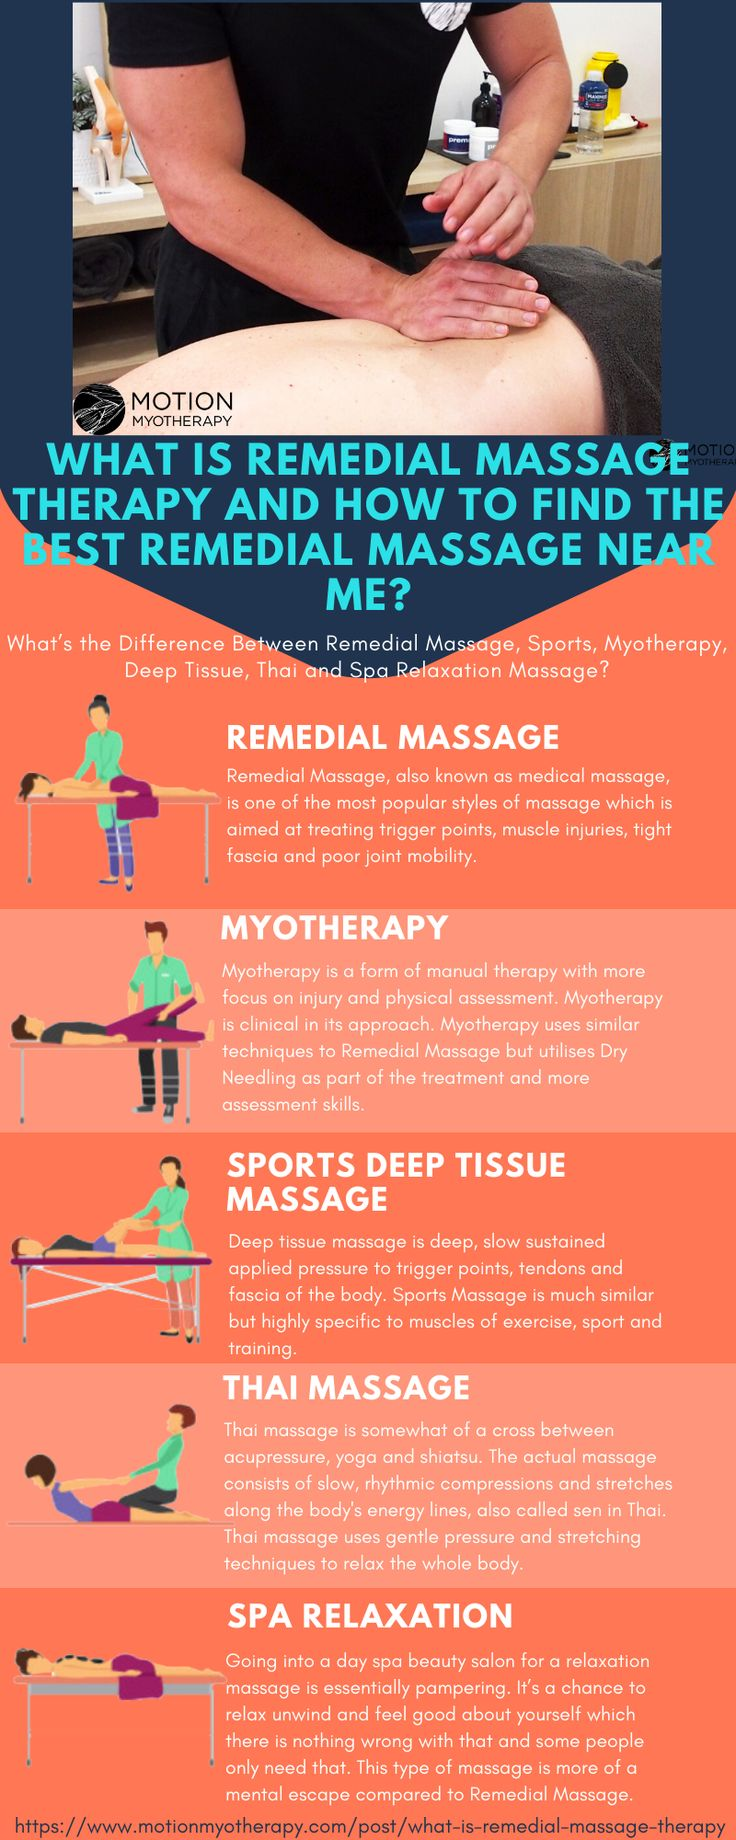 What is Remedial Massage Therapy and How to Find the Best